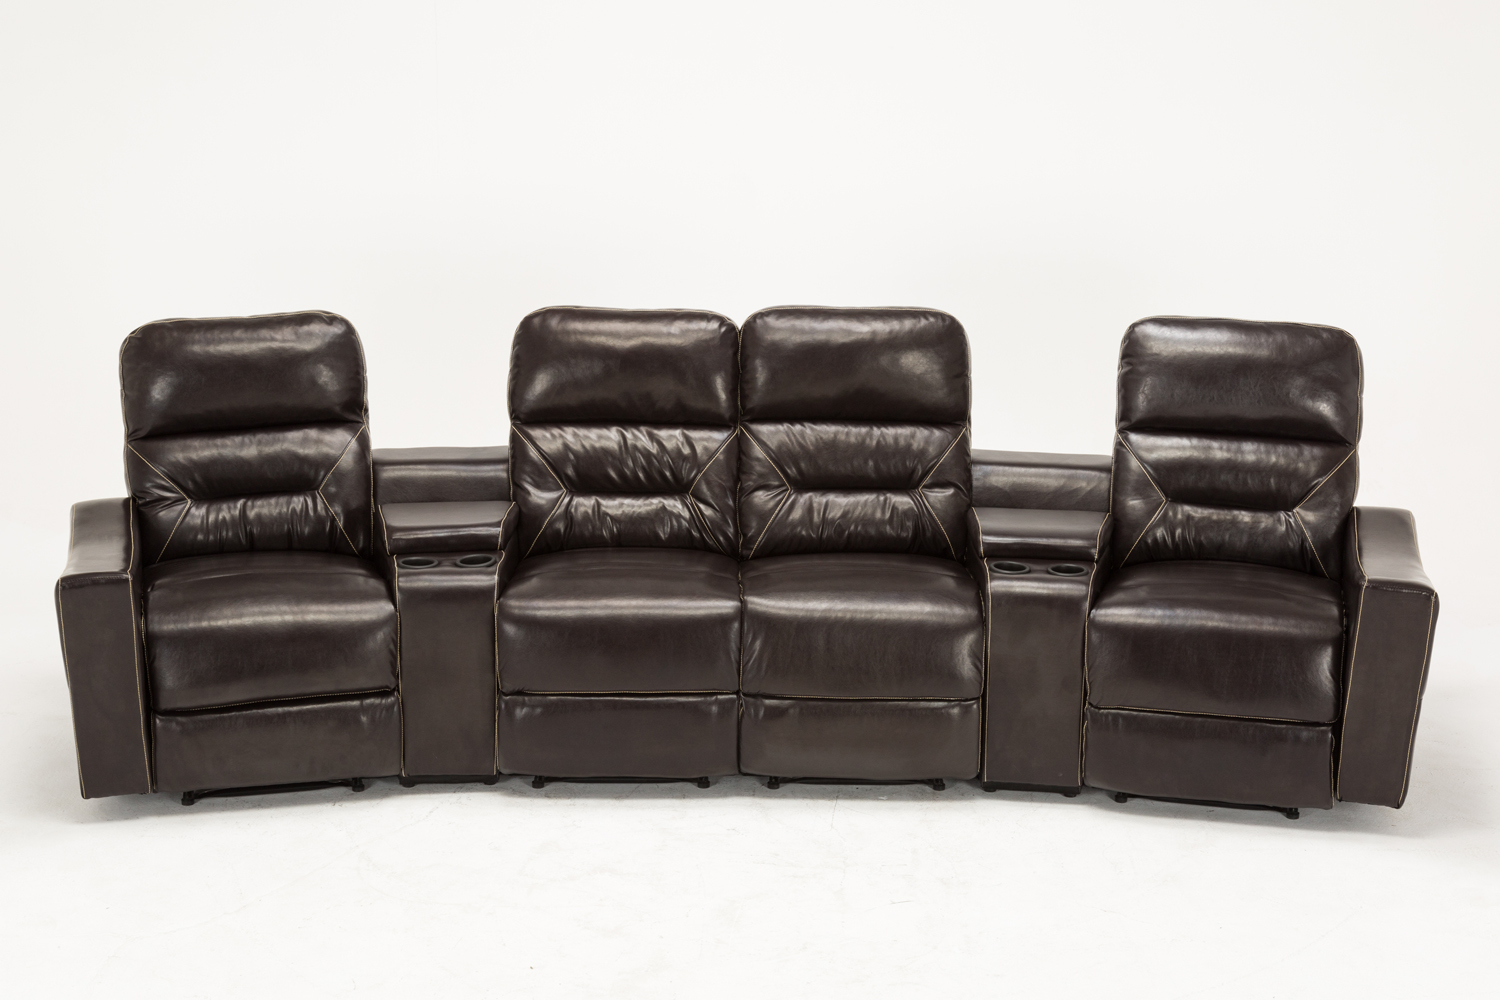 M bo Home Theater Leather 4 Set Recliner Media Sofa w Cup Holder 7095 Brown